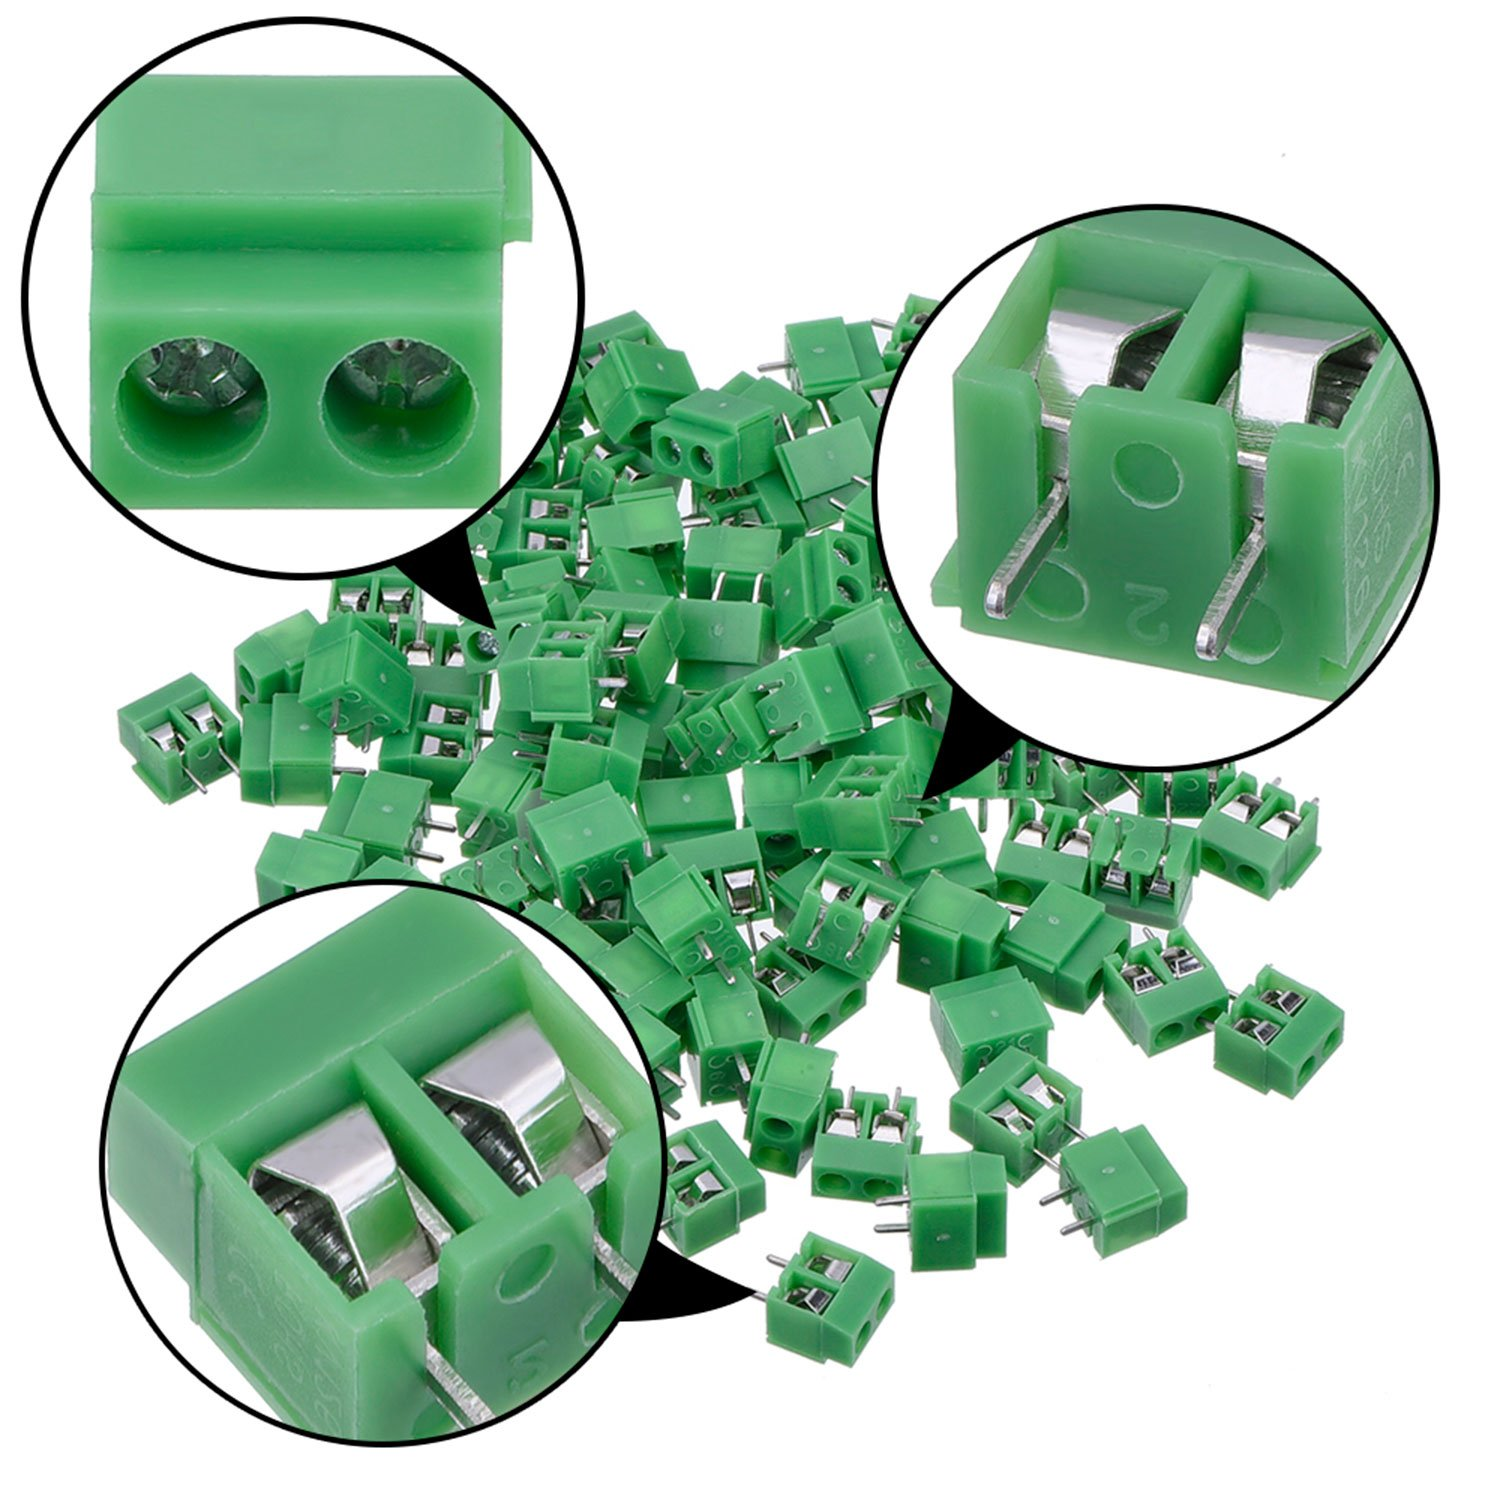 Kangwei Pcb Mount Screw Terminal Block Connector 100 50pcs 2pins Printed Circuit Board Terminals Us Pack 2 Pole 5 Mm Pitch 10a 300v Toys Games